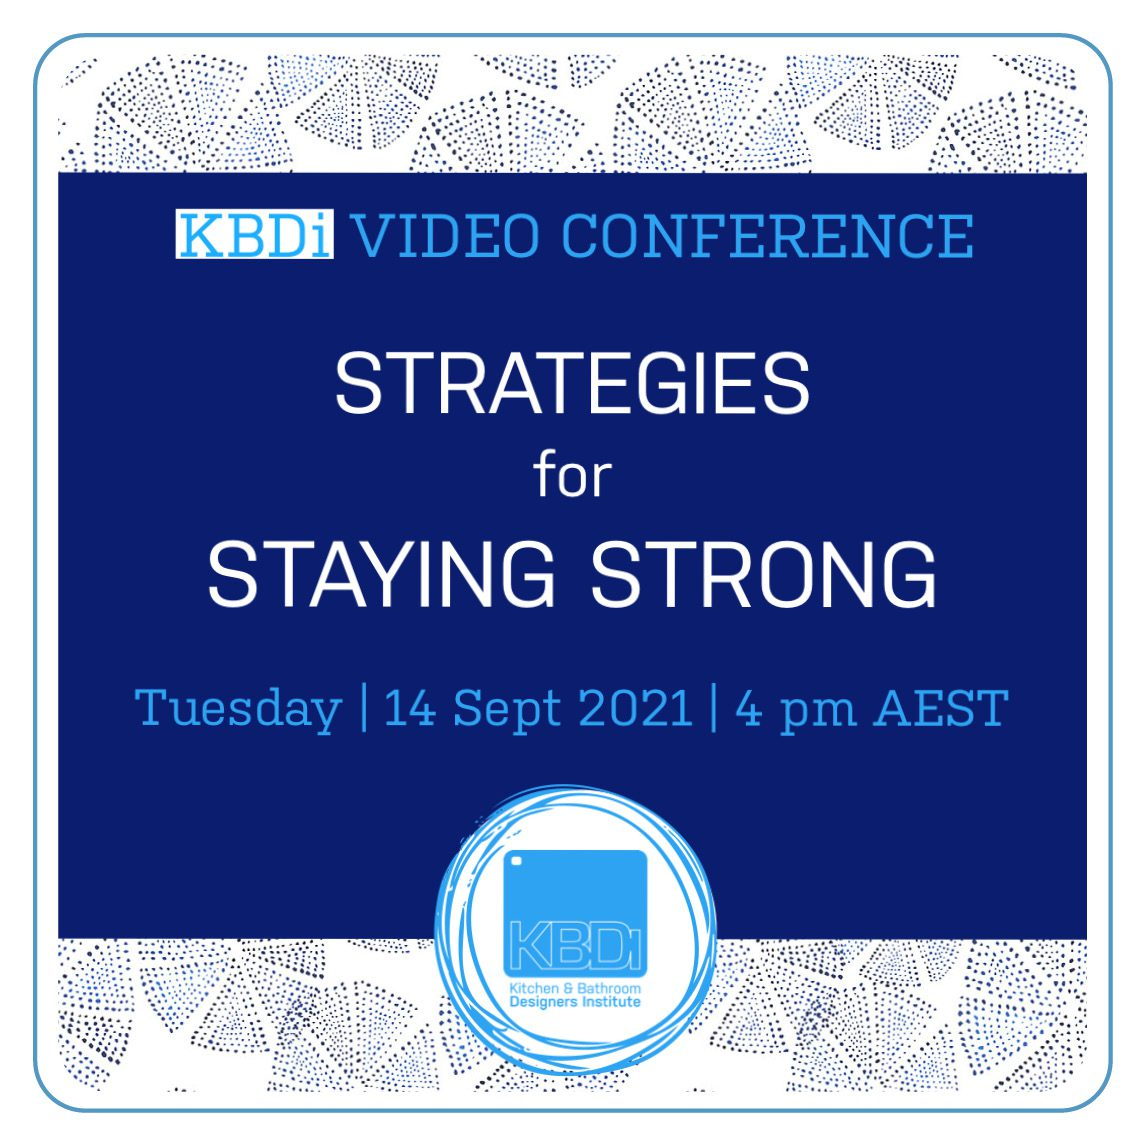 KBDi Videoconference Staying Strong